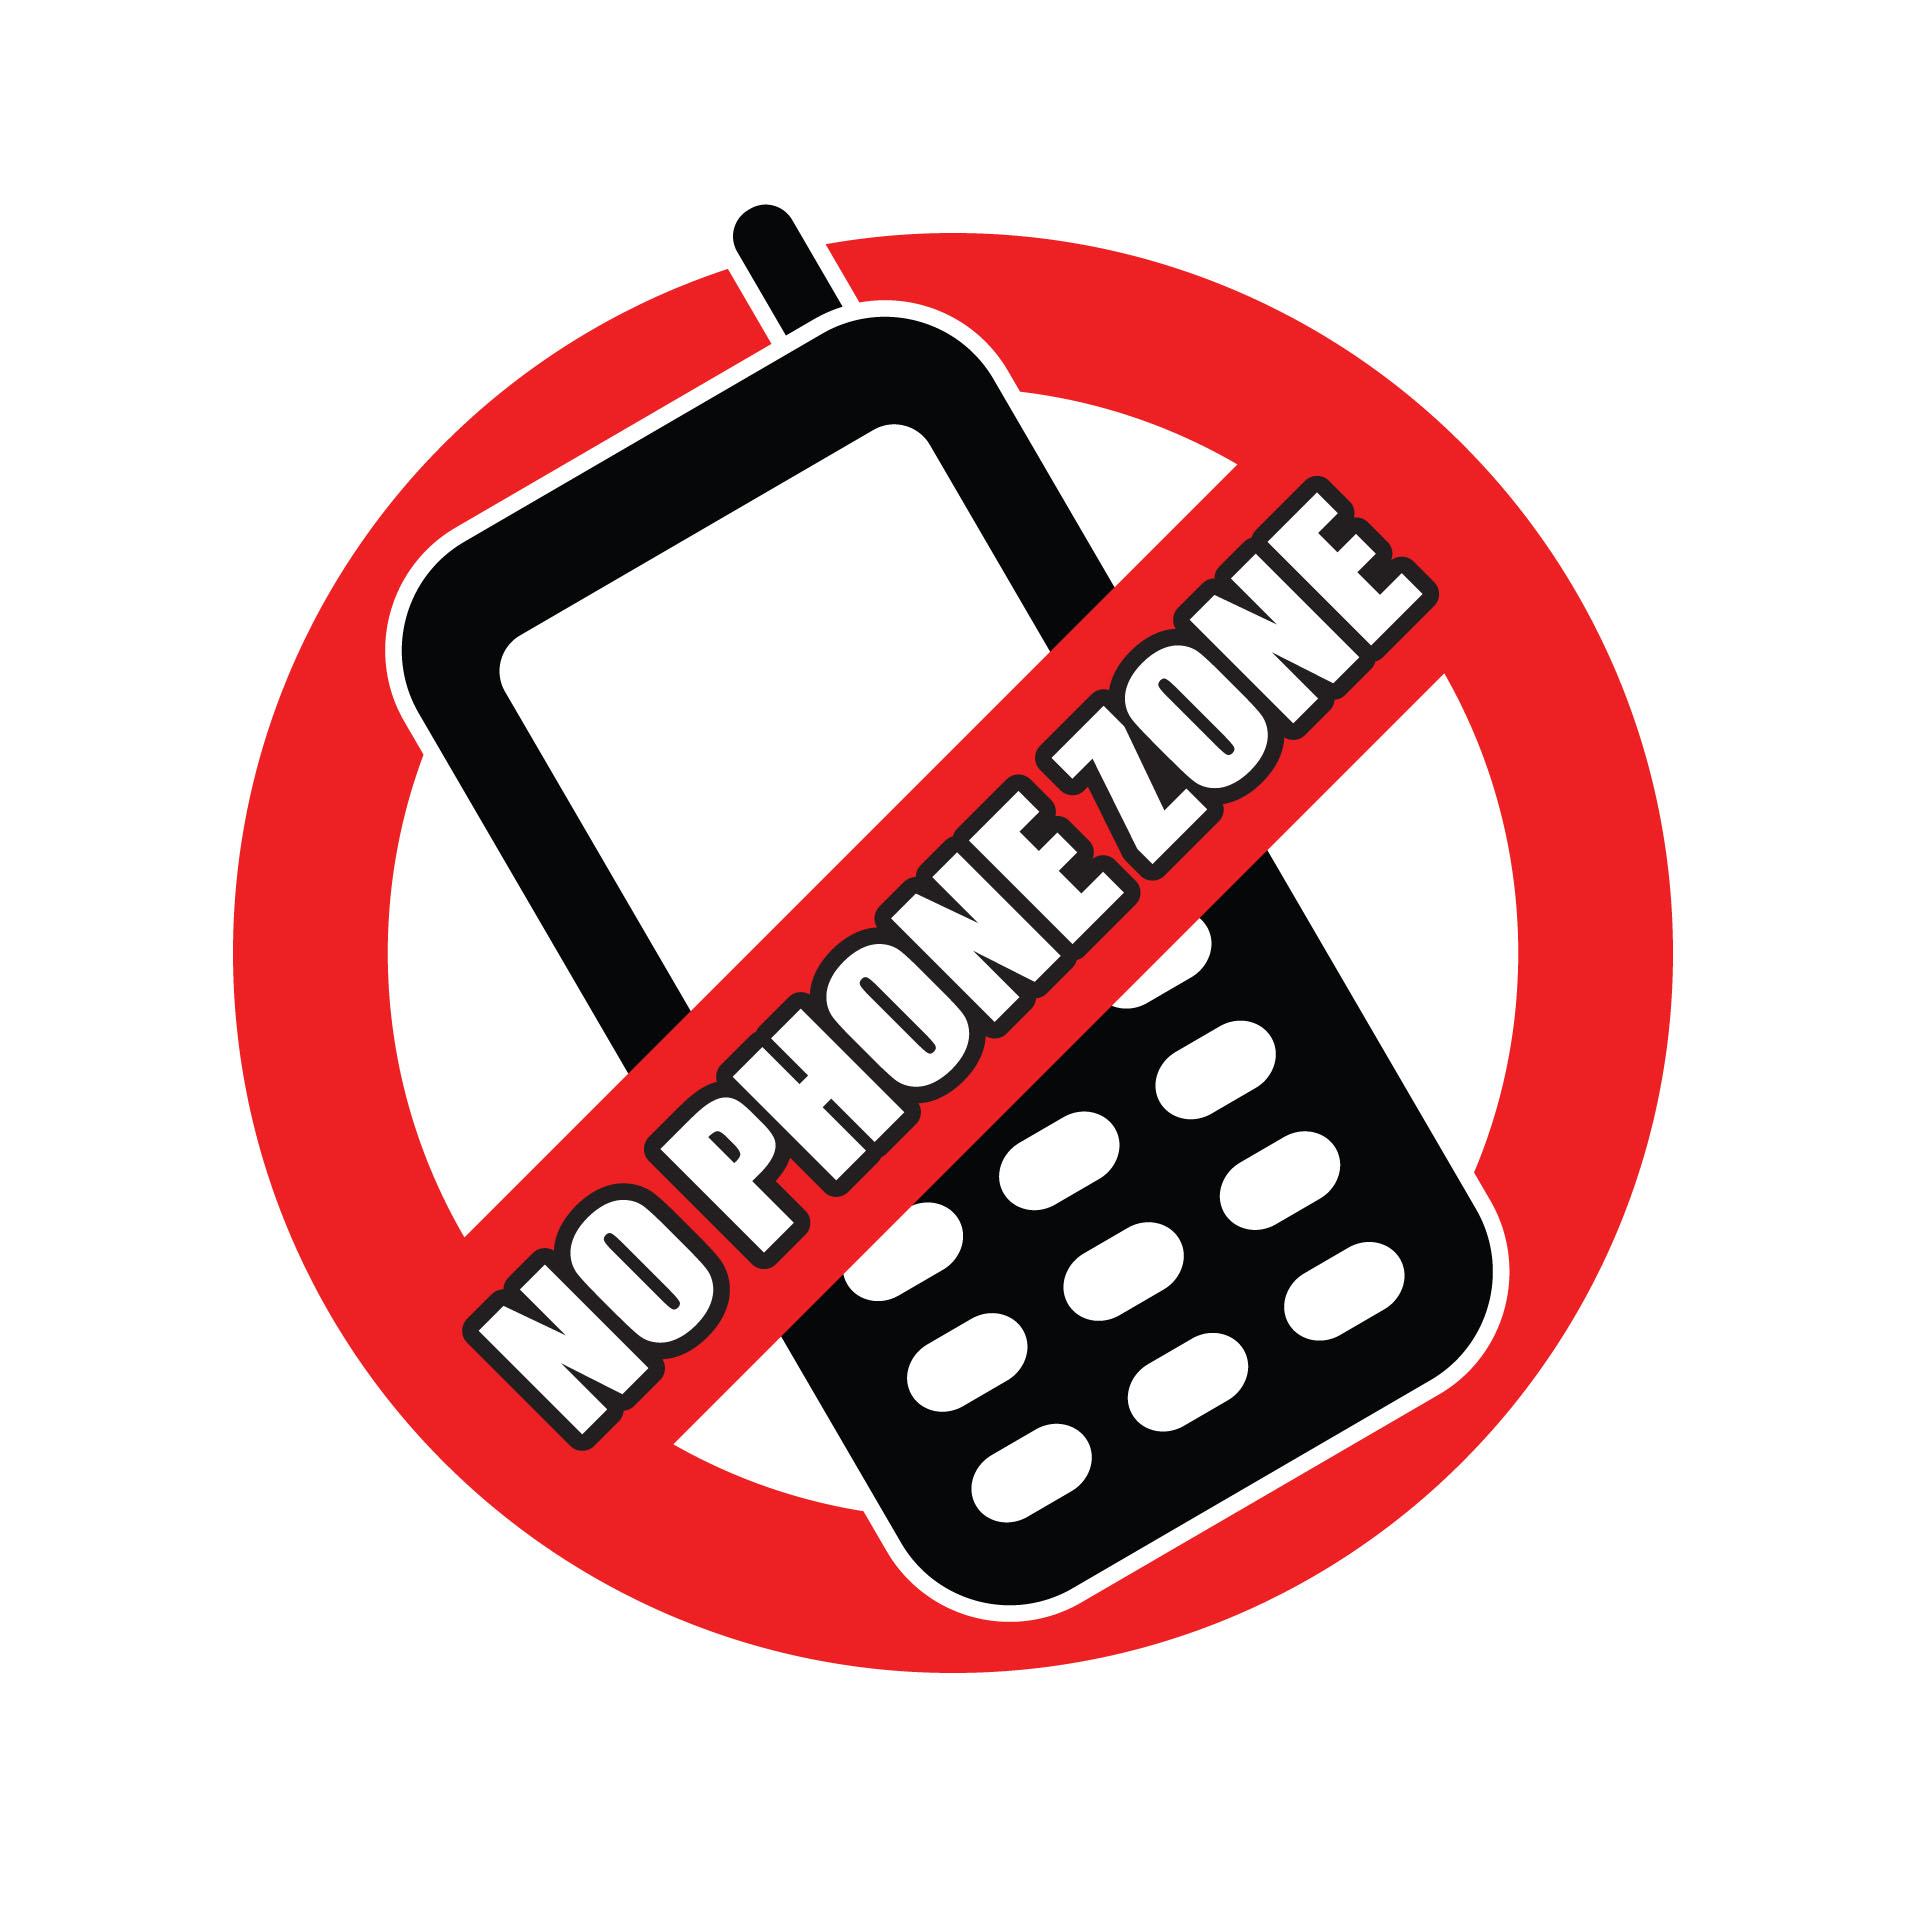 No Phone Zone Clipart.